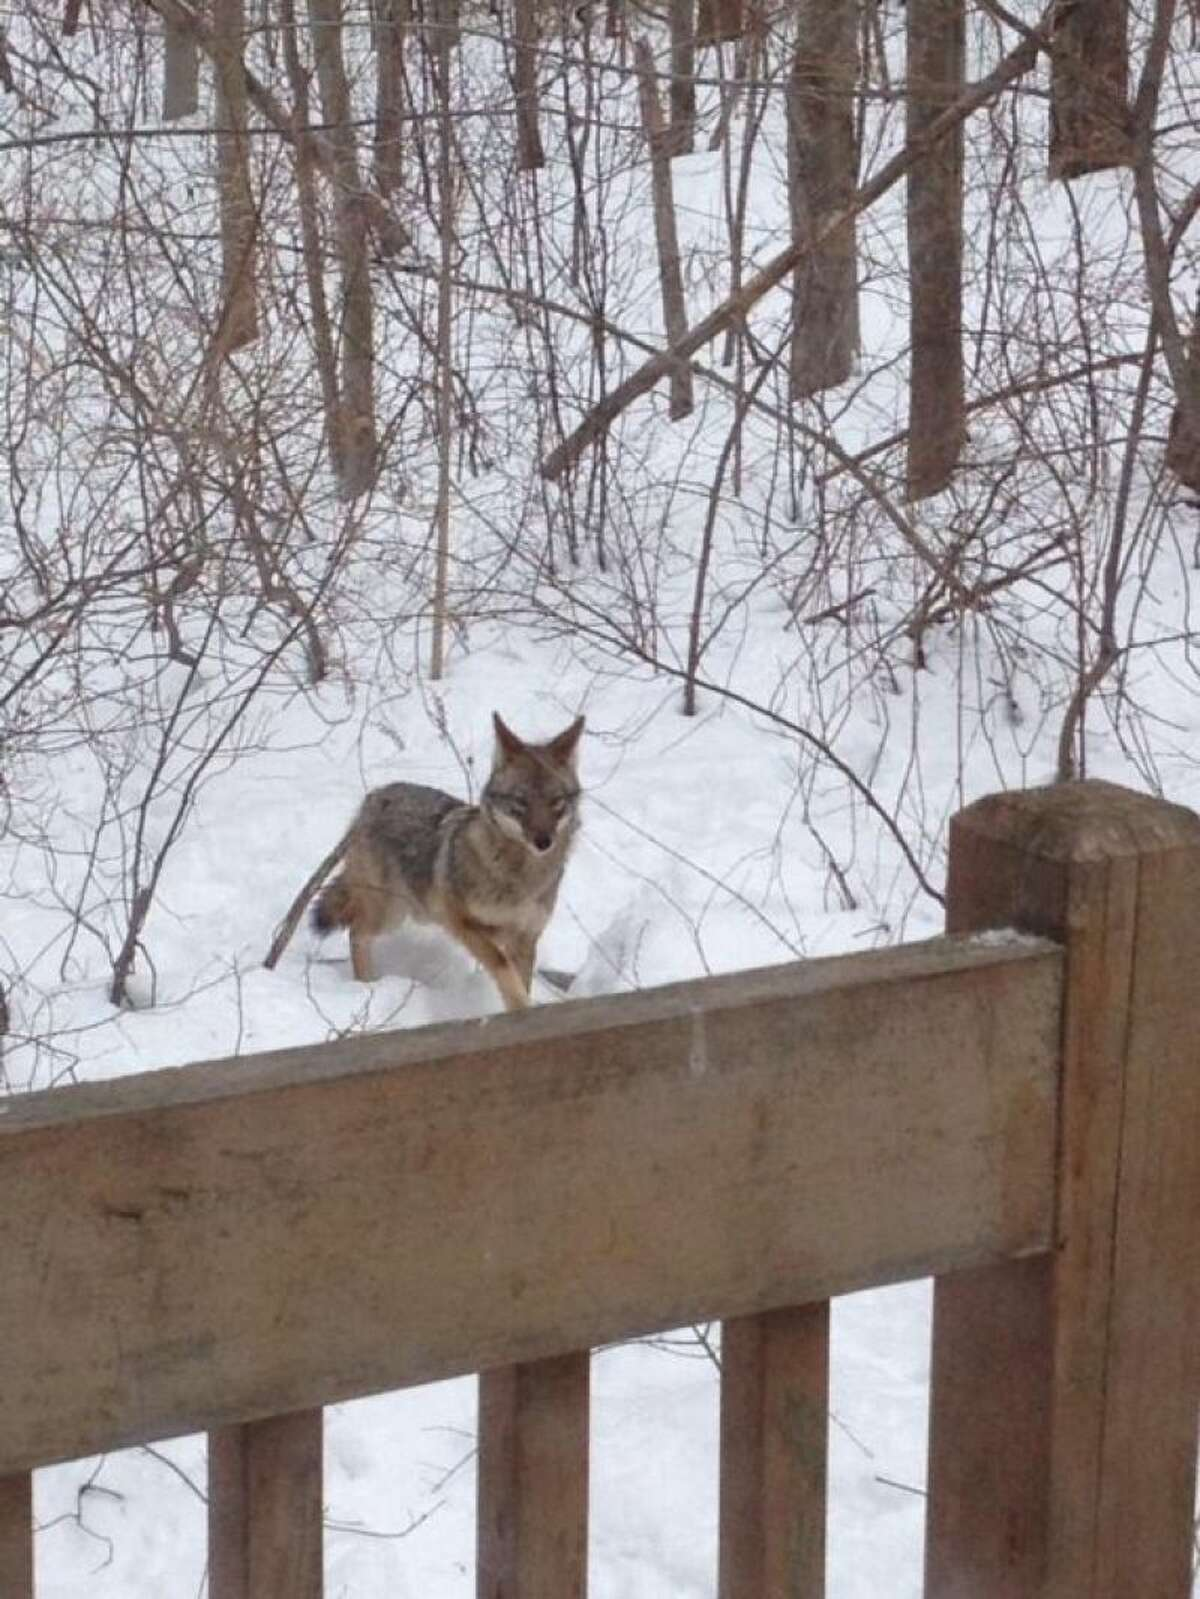 Coyotes spotted in Wolfpit/Cranbury area of Norwalk.